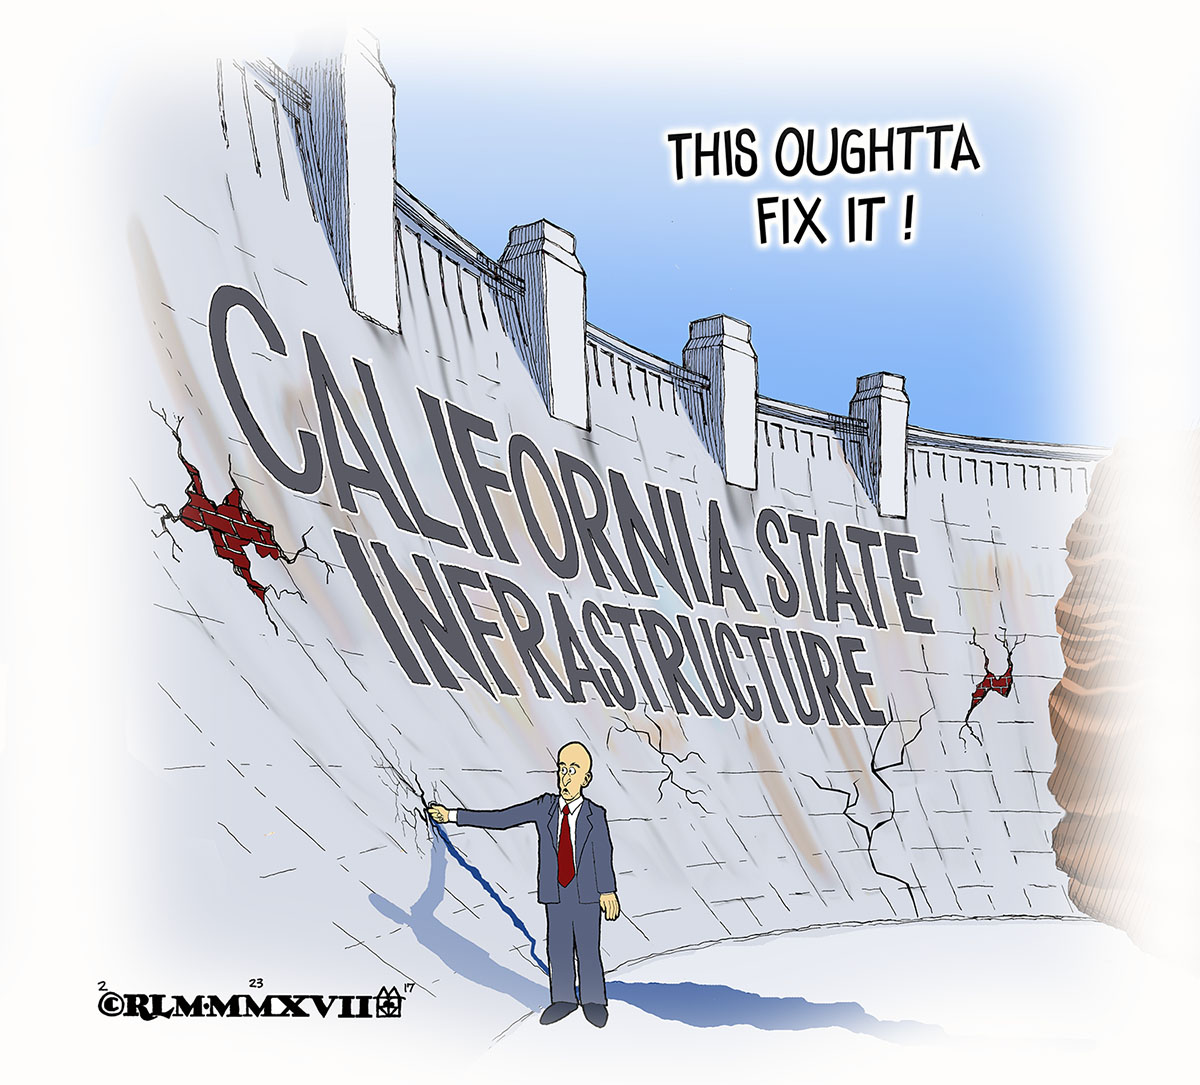 California State Infrastructure